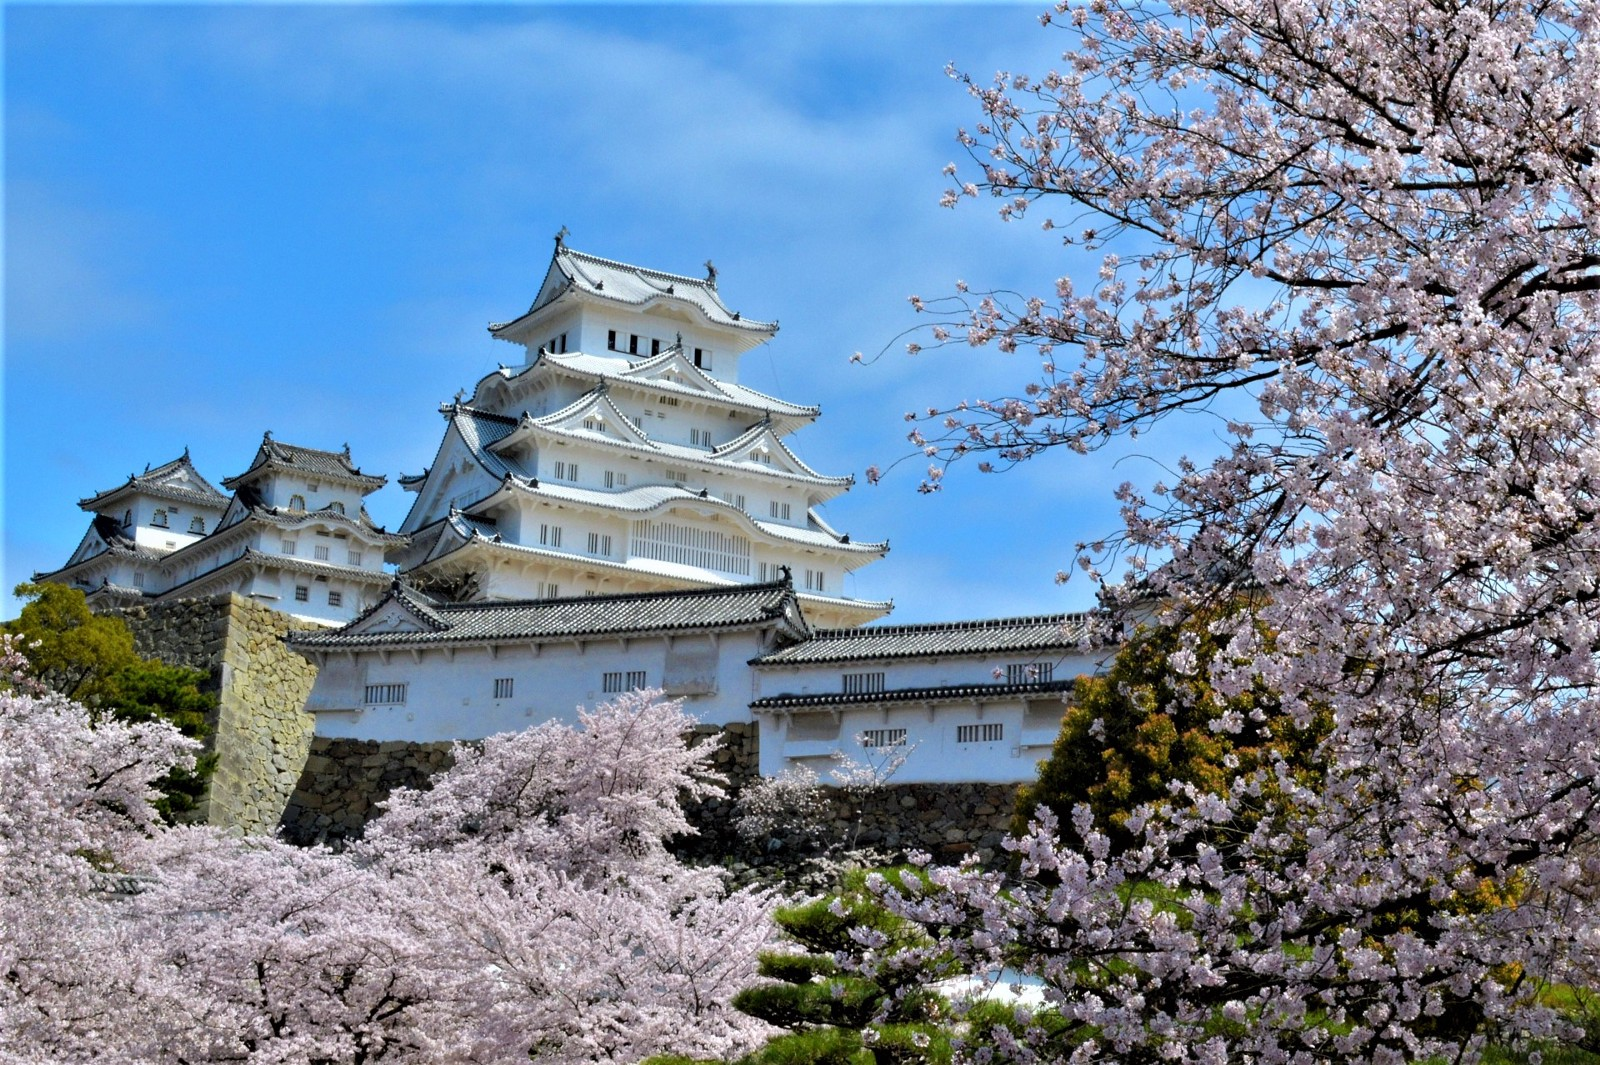 The glorious Himeji Castle with cherry blossoms in spring